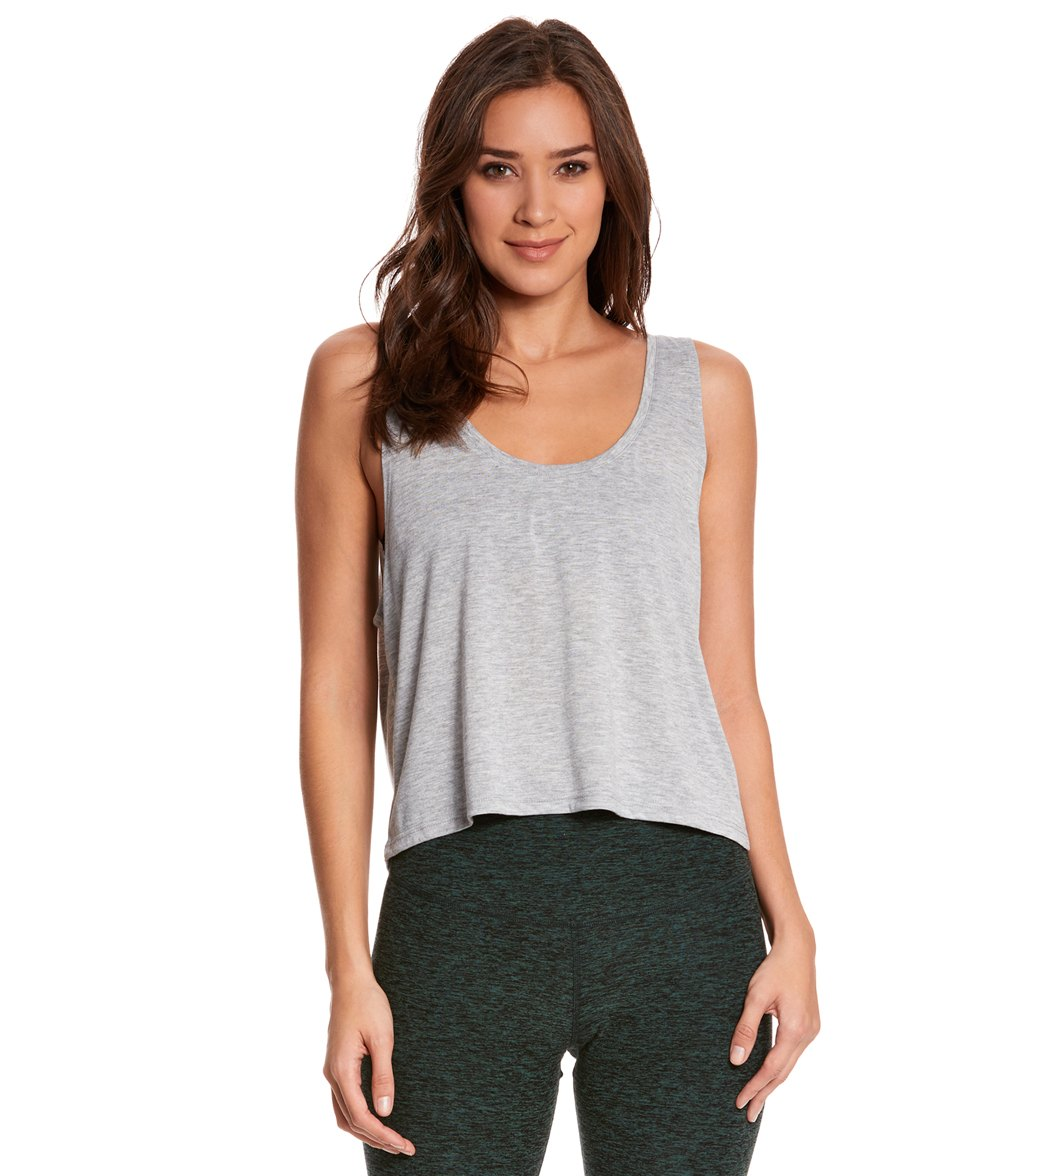 Bella + Canvas Women's Flowy Boxy Workout Tank Top - Athletic Heather - Large/X-Large Cotton